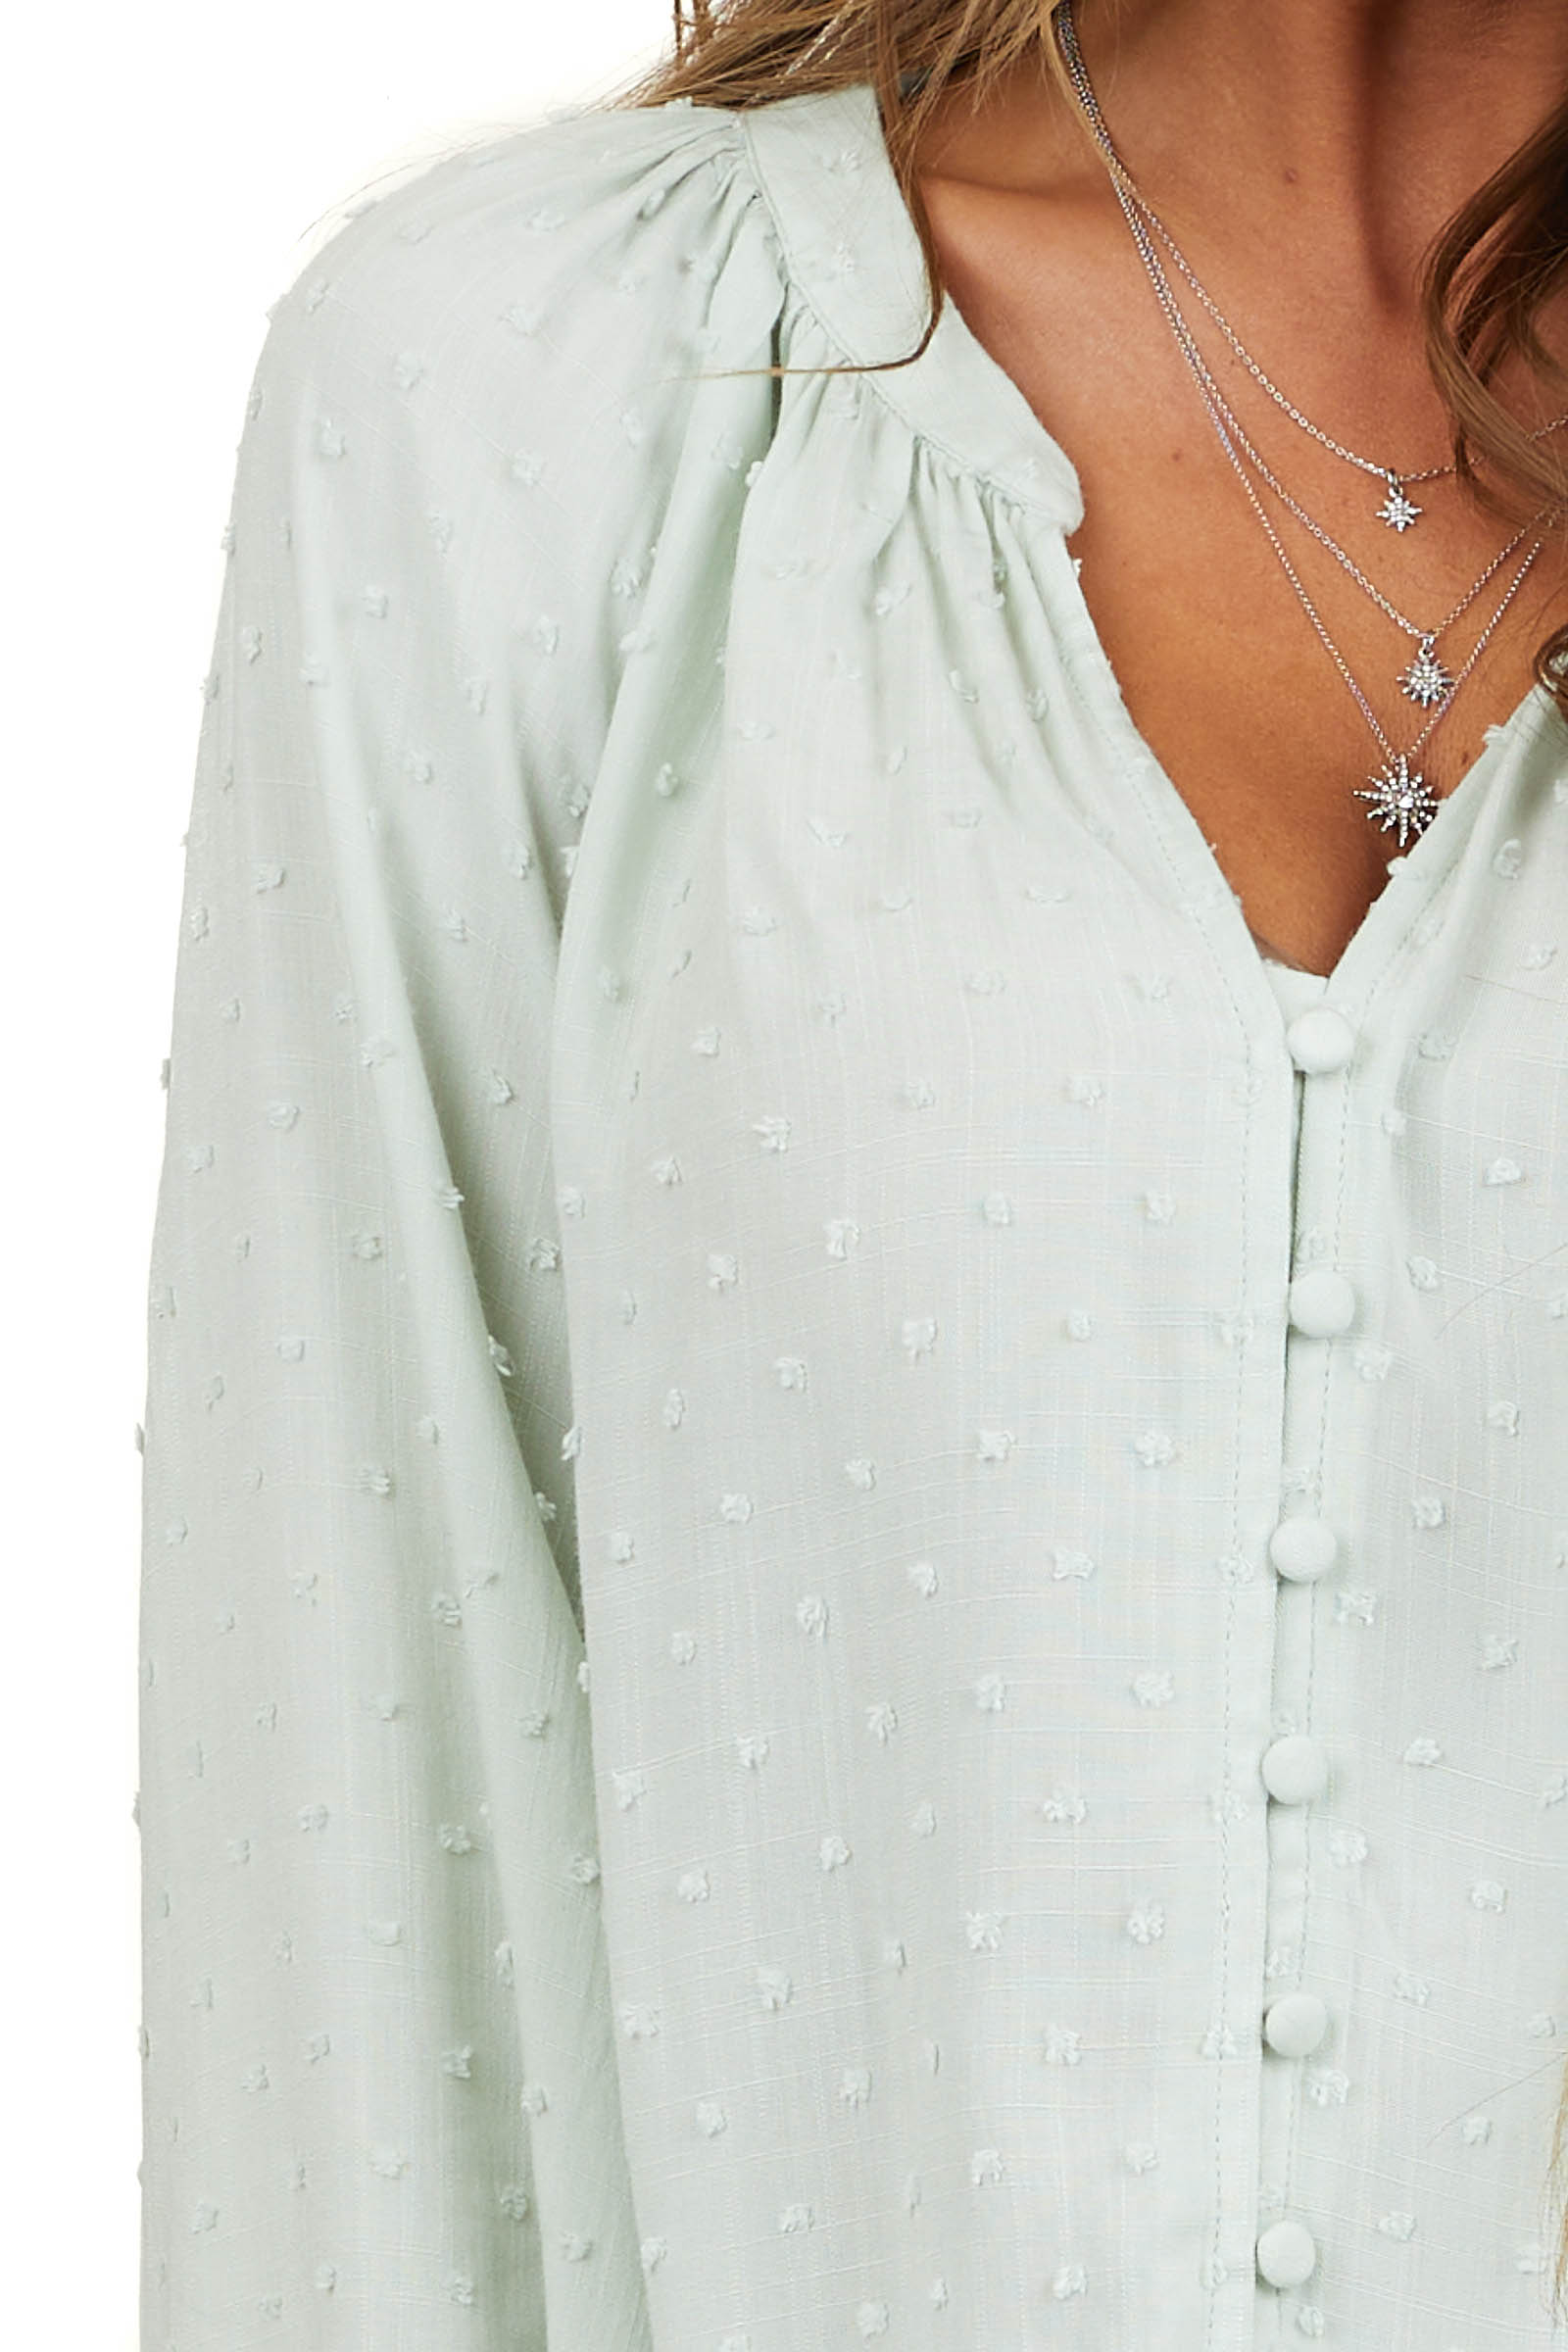 Mint Long Sleeve Button Up Blouse with Swiss Dots and Cuffs